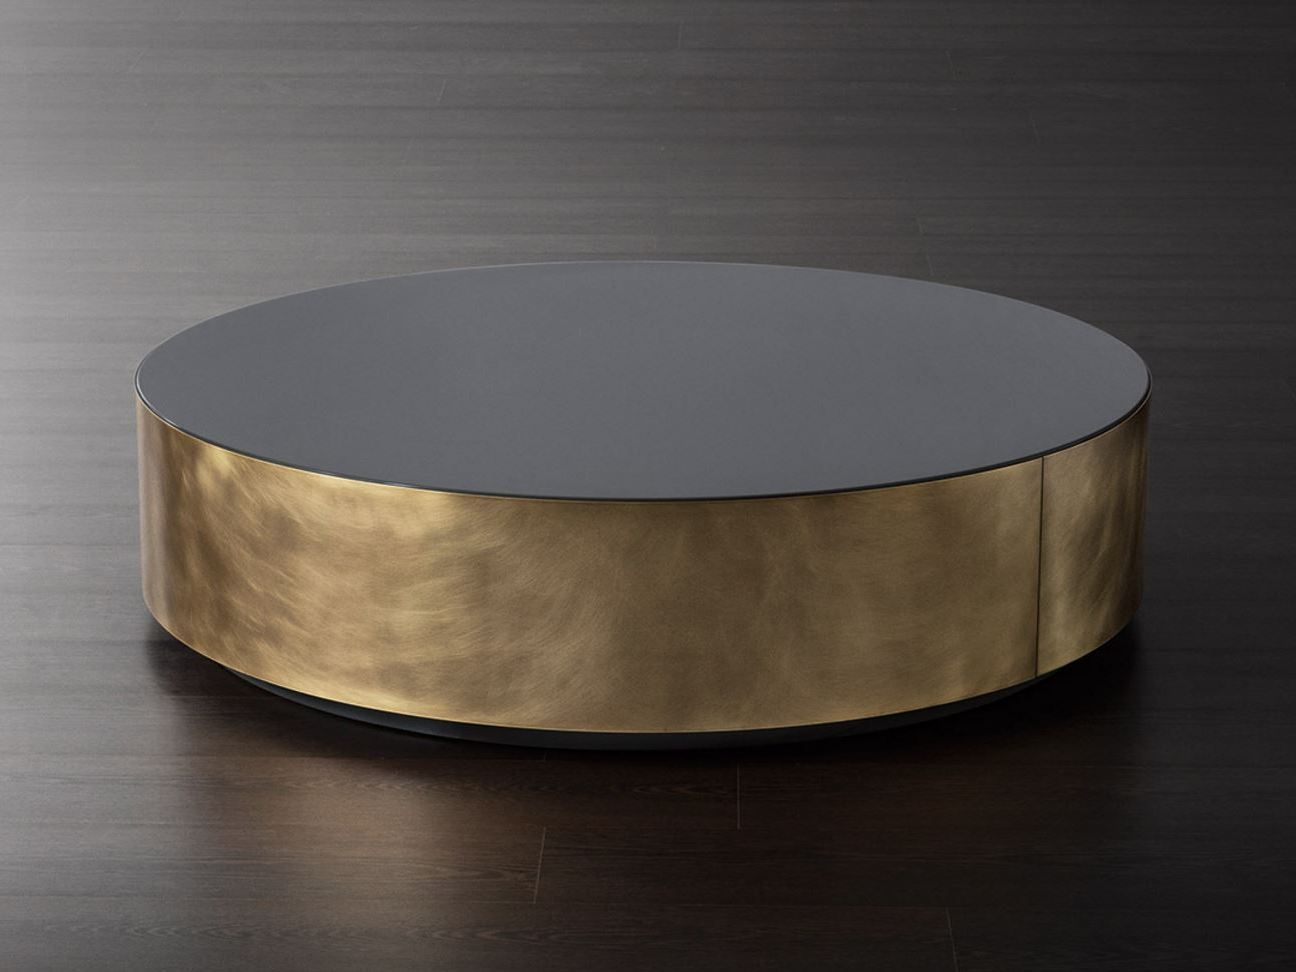 Belt Round Coffee Table By Meridiani Coffee Table Living Room Table Round Coffee Table [ 972 x 1296 Pixel ]